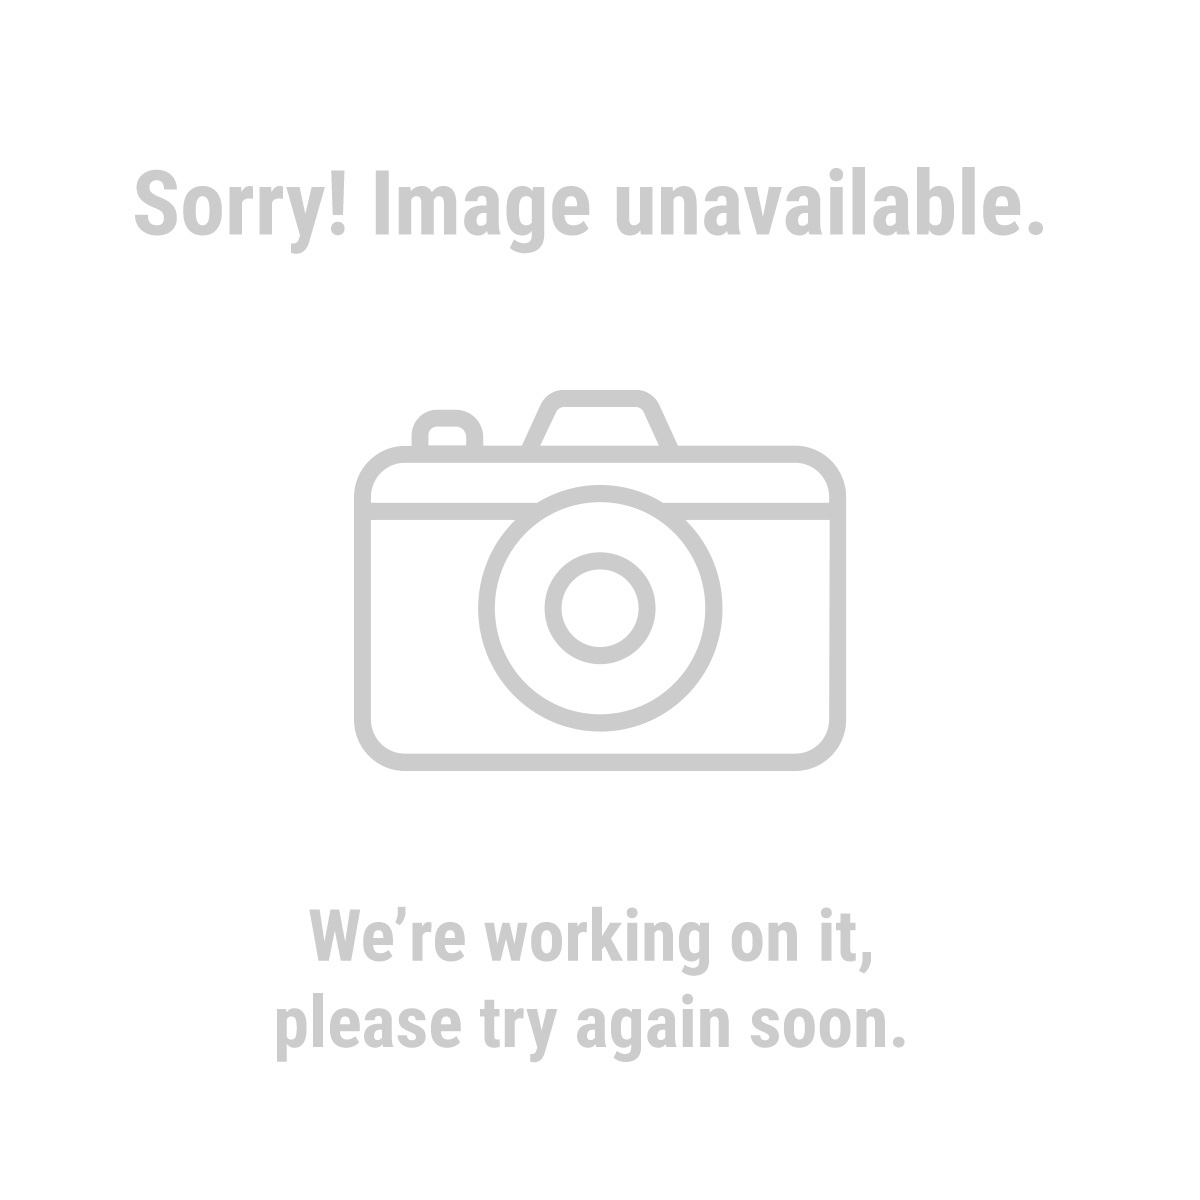 U.S. General® Pro 67831 26 in., 16 Drawer Glossy Red Roller Cabinet Combo